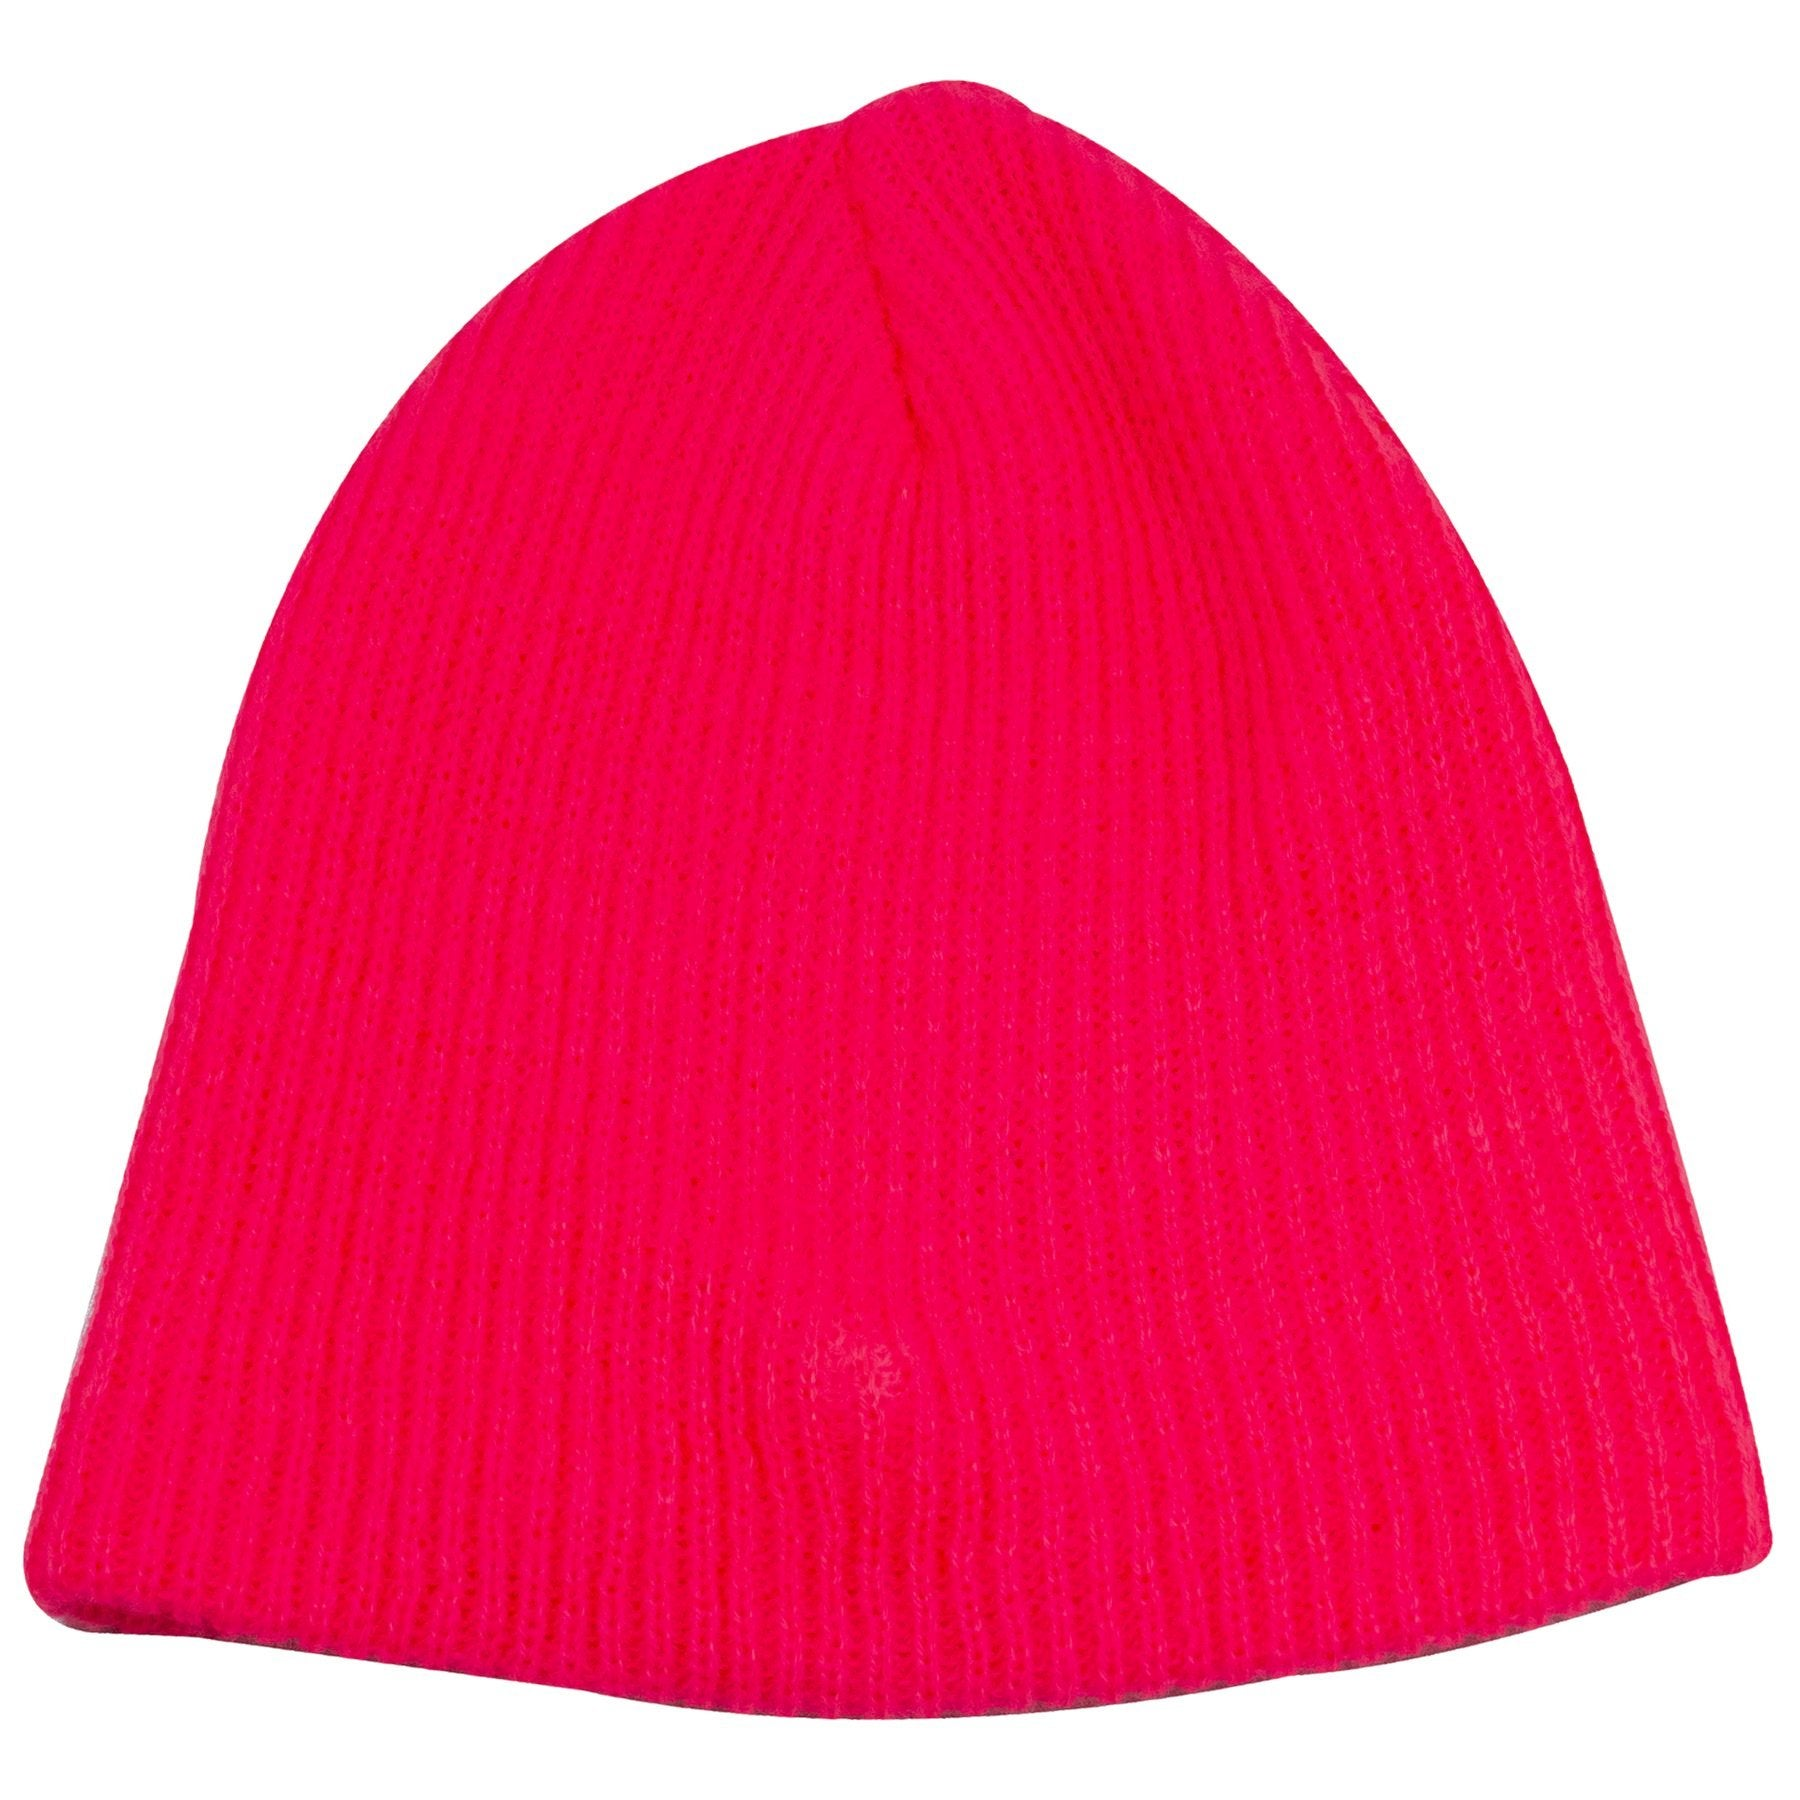 68eaf7907c8 ... the neon red neff daily beanie is made of a stretchy knit material that  fits all